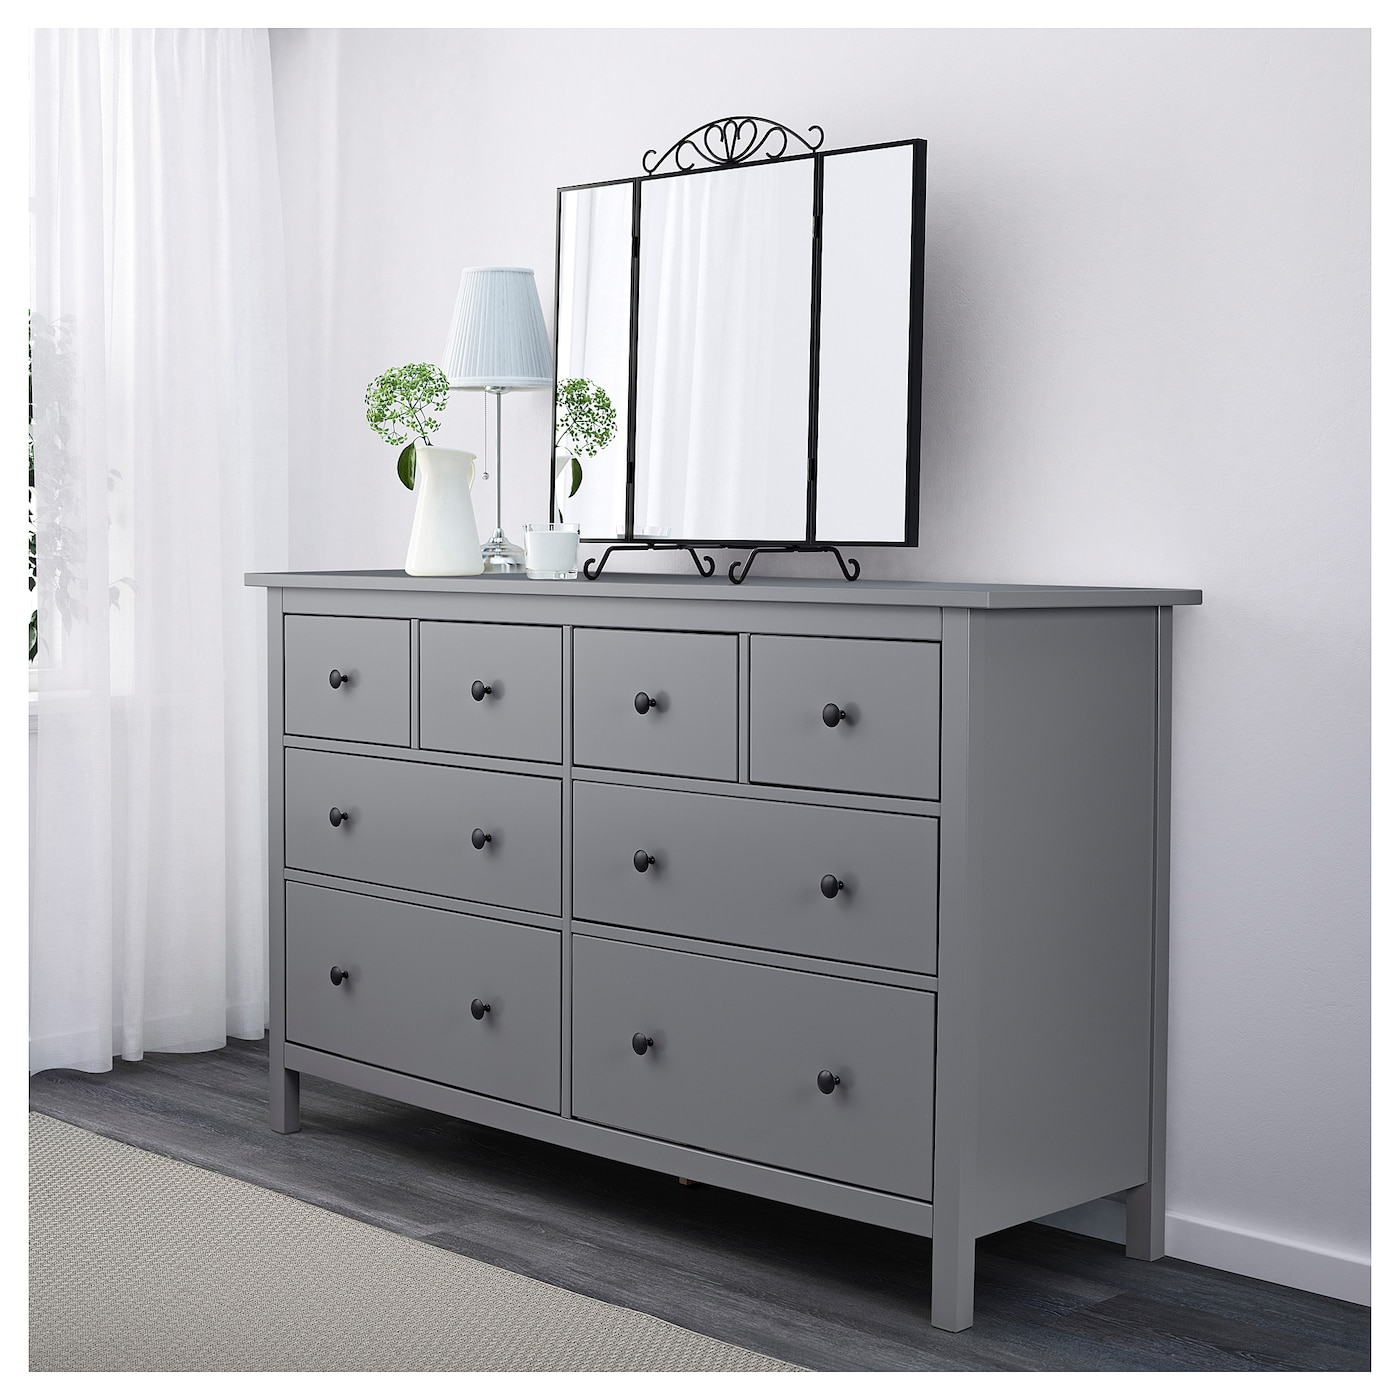 Hemnes chest of 8 drawers grey 160x96 cm ikea for Ikea grey bedroom furniture